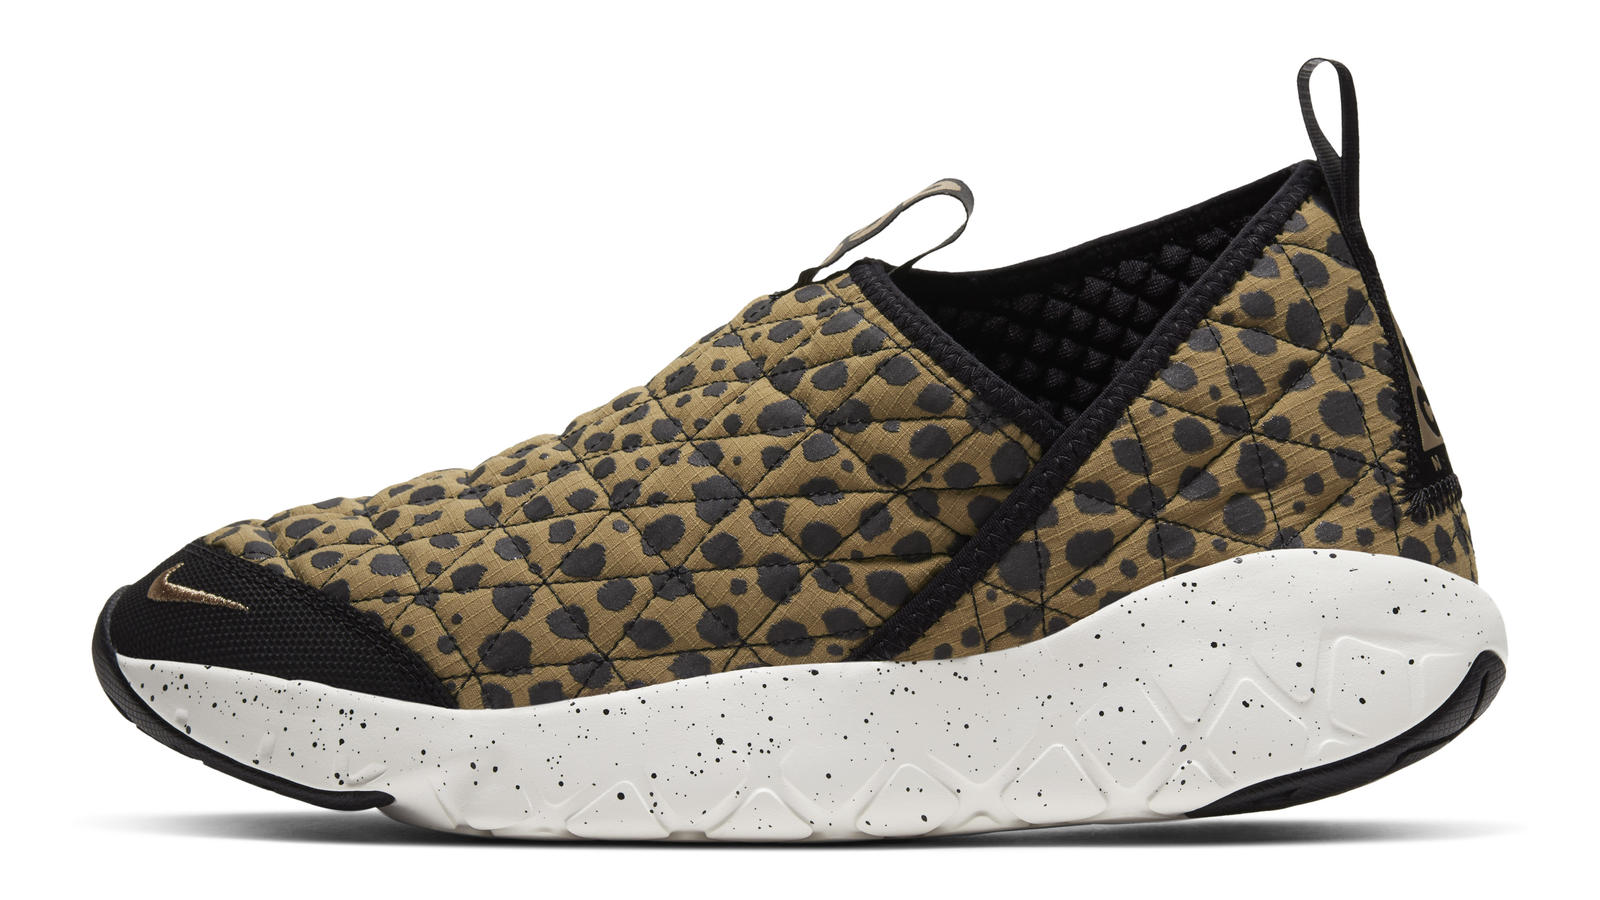 Nike ACG Moc 3.0 Official Images and